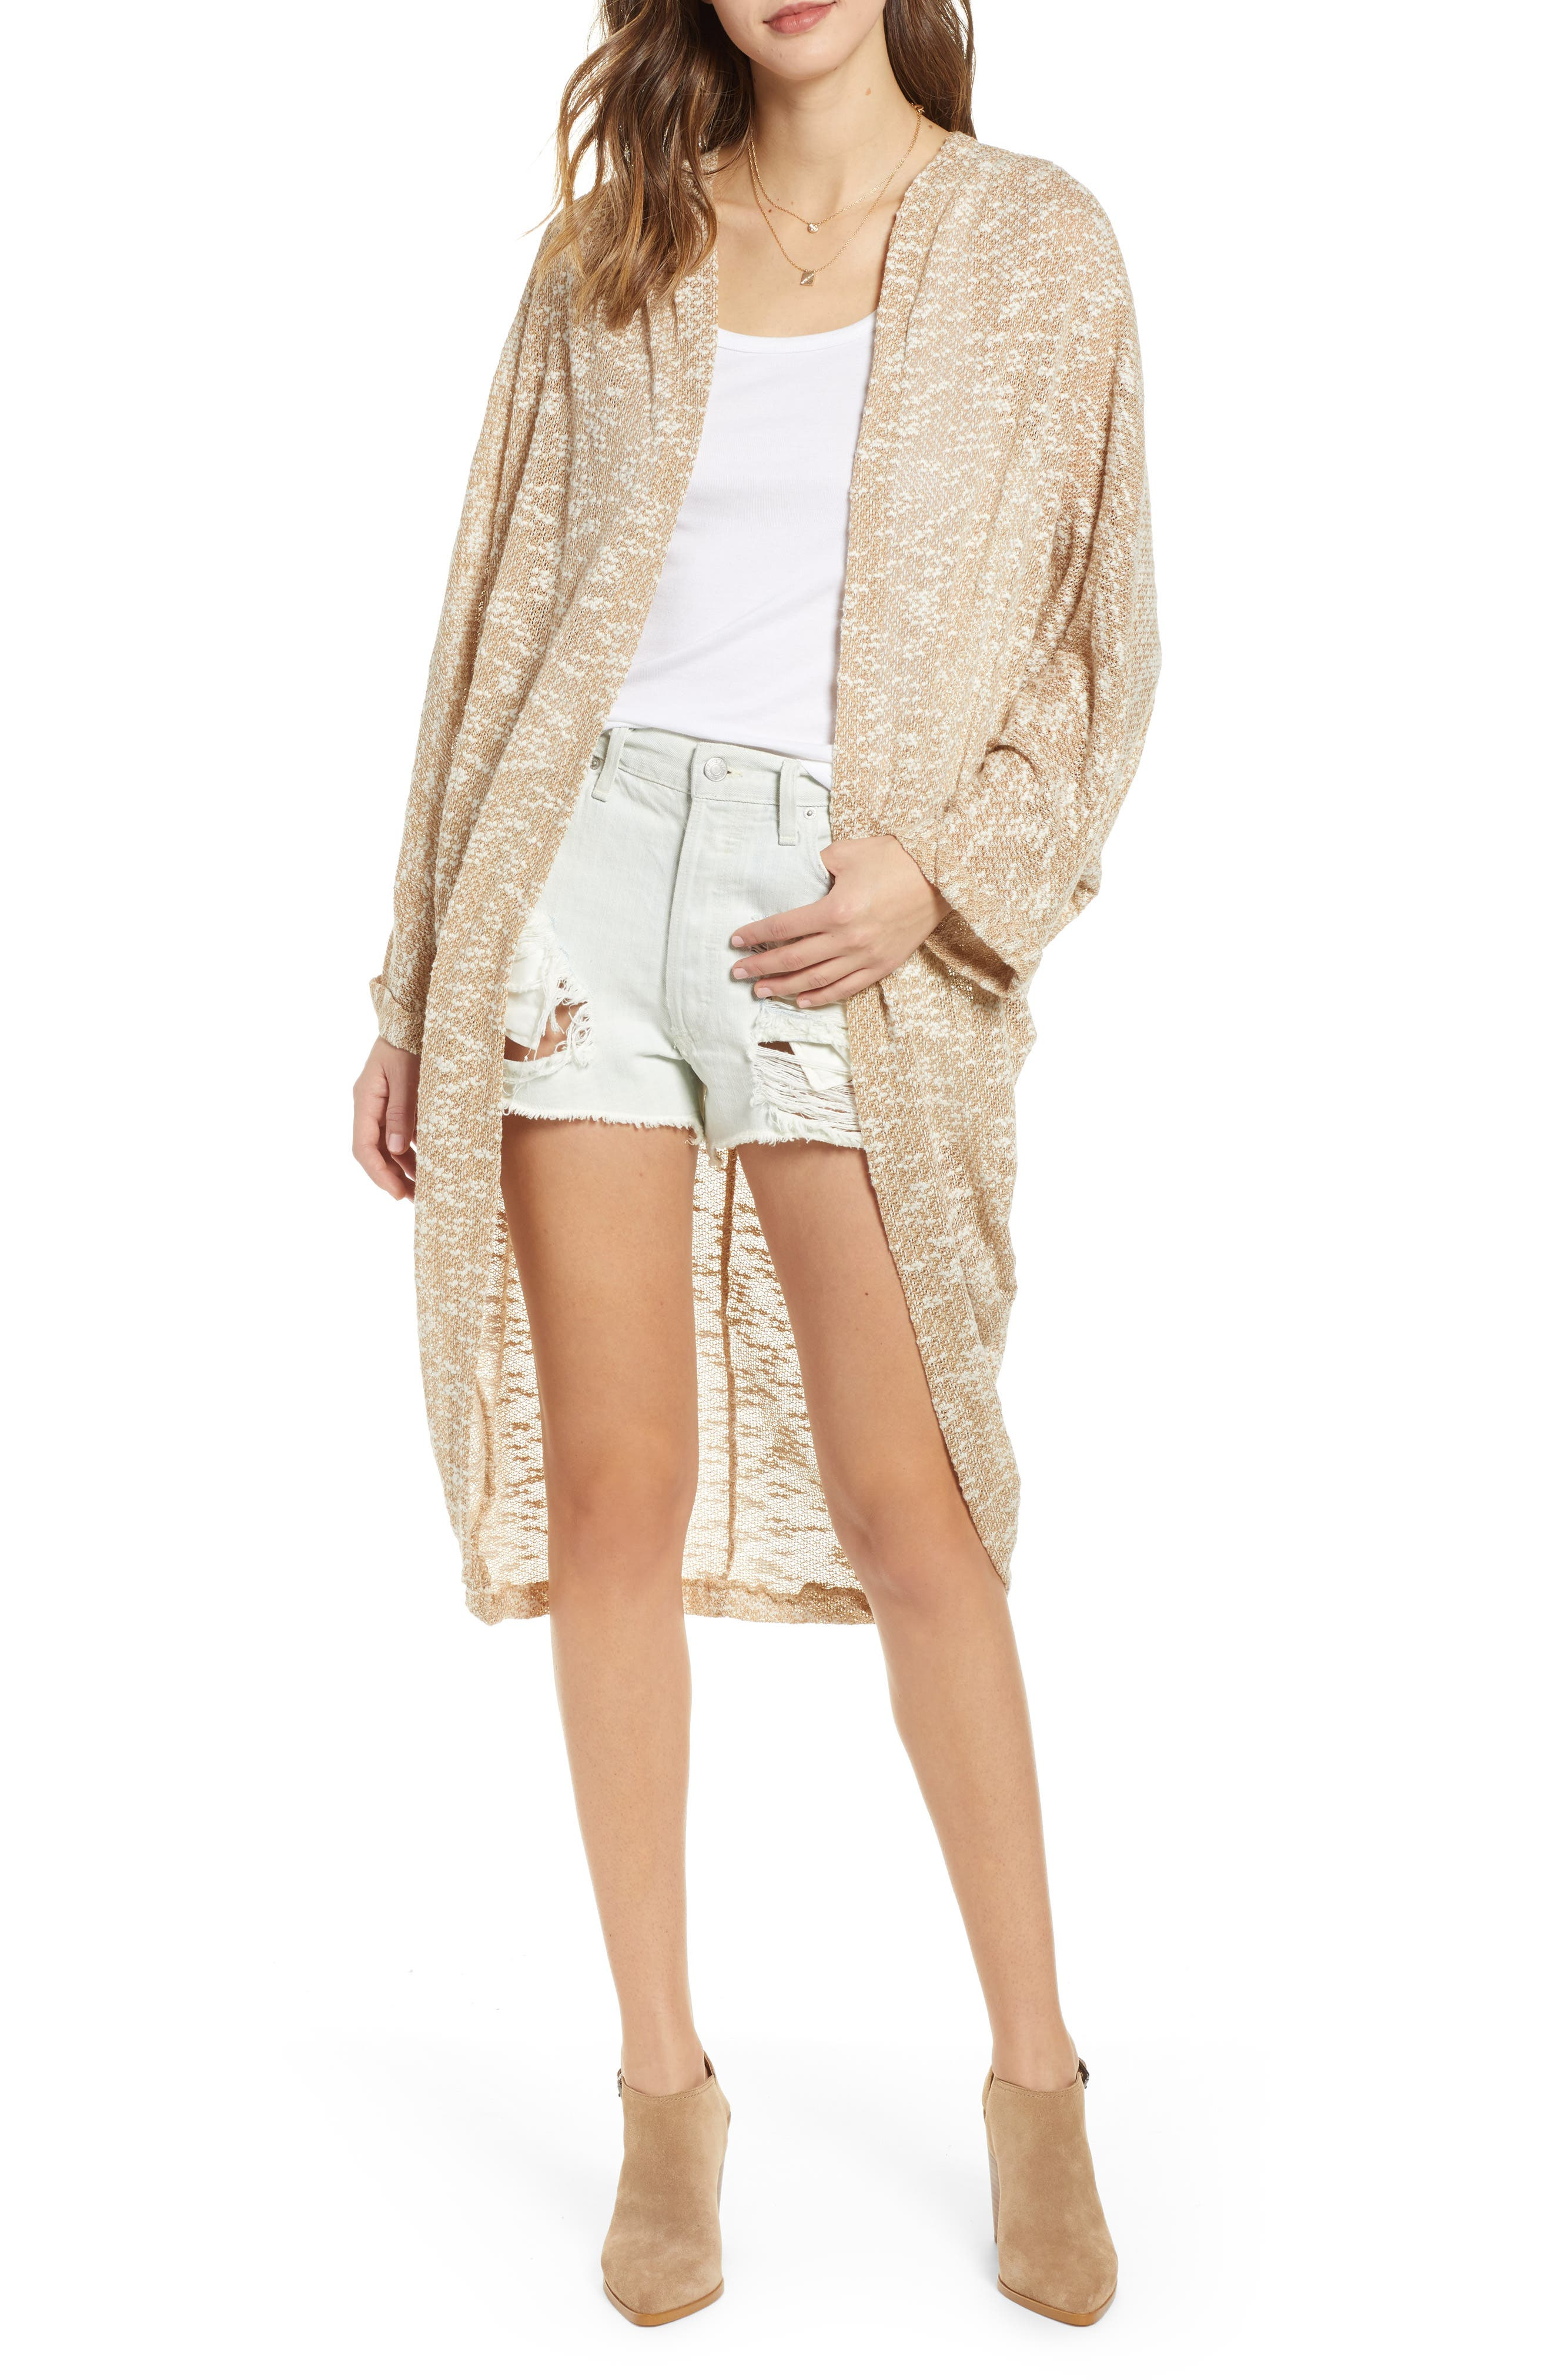 Free People Promenade Cocoon Cardigan, Size One Size - Beige